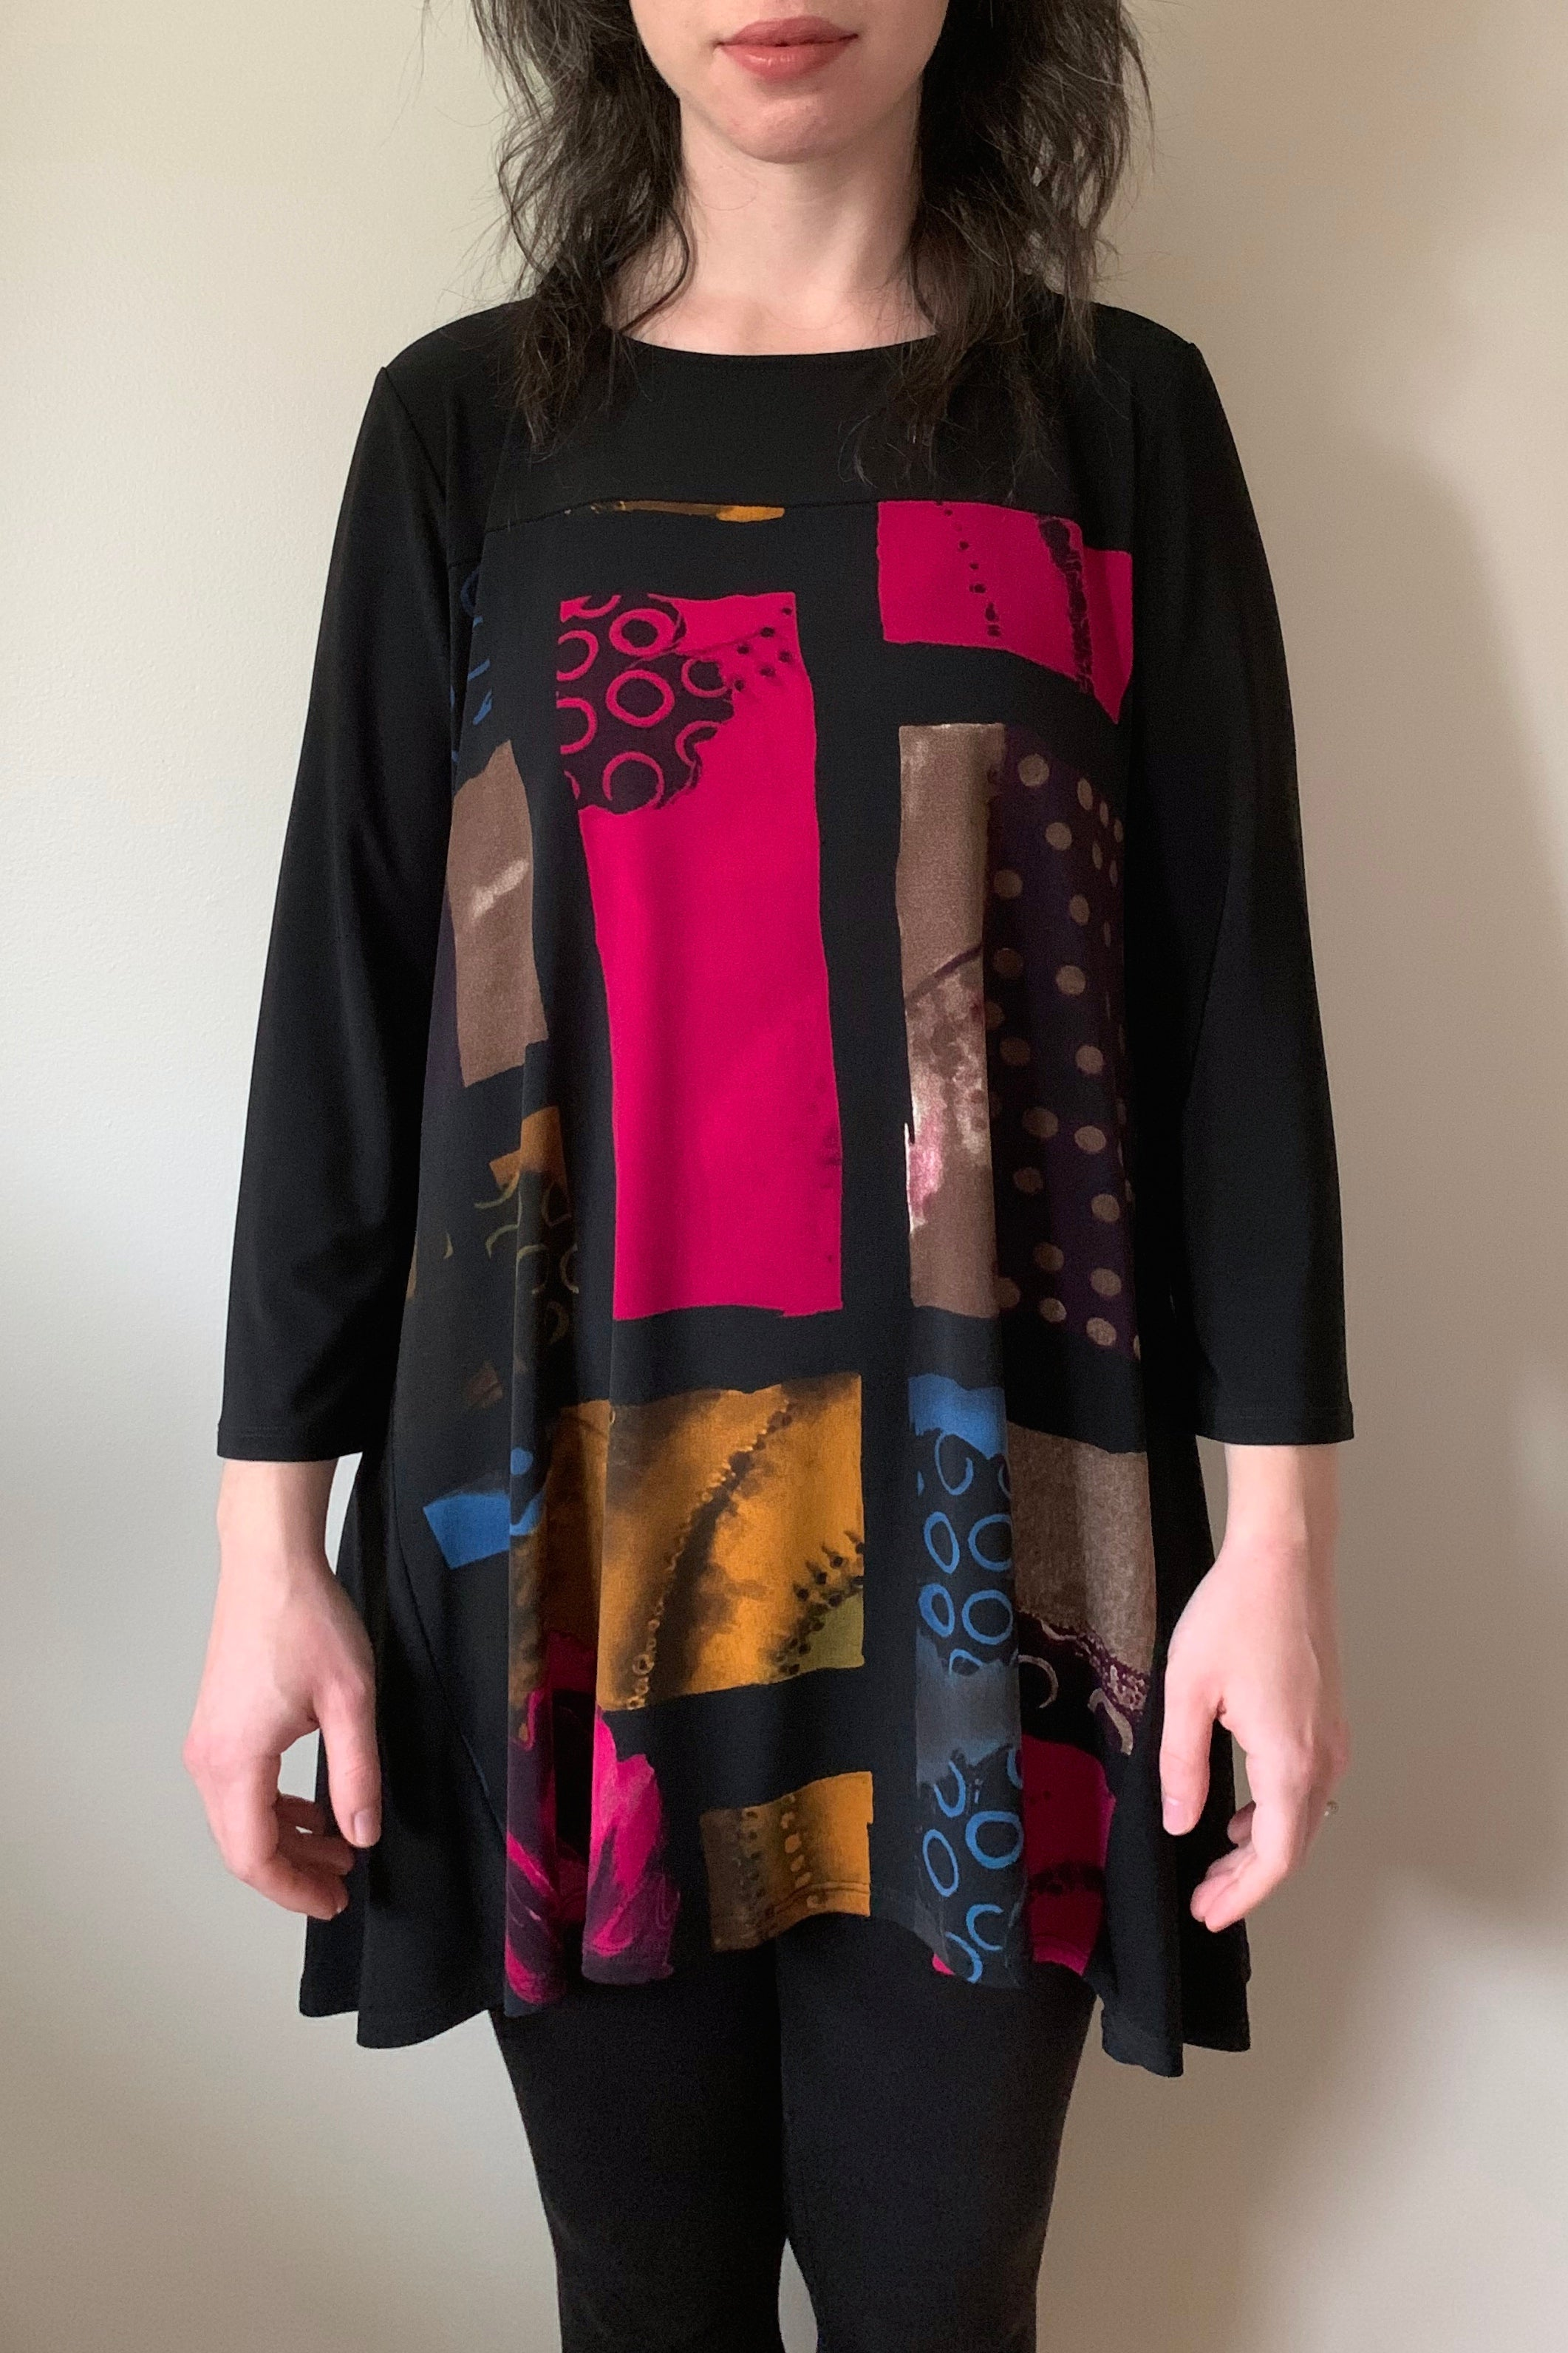 COMPLI K Black and Multicolour 3/4 Sleeve Knit Tunic 31130 FW2020/2021 (front view)